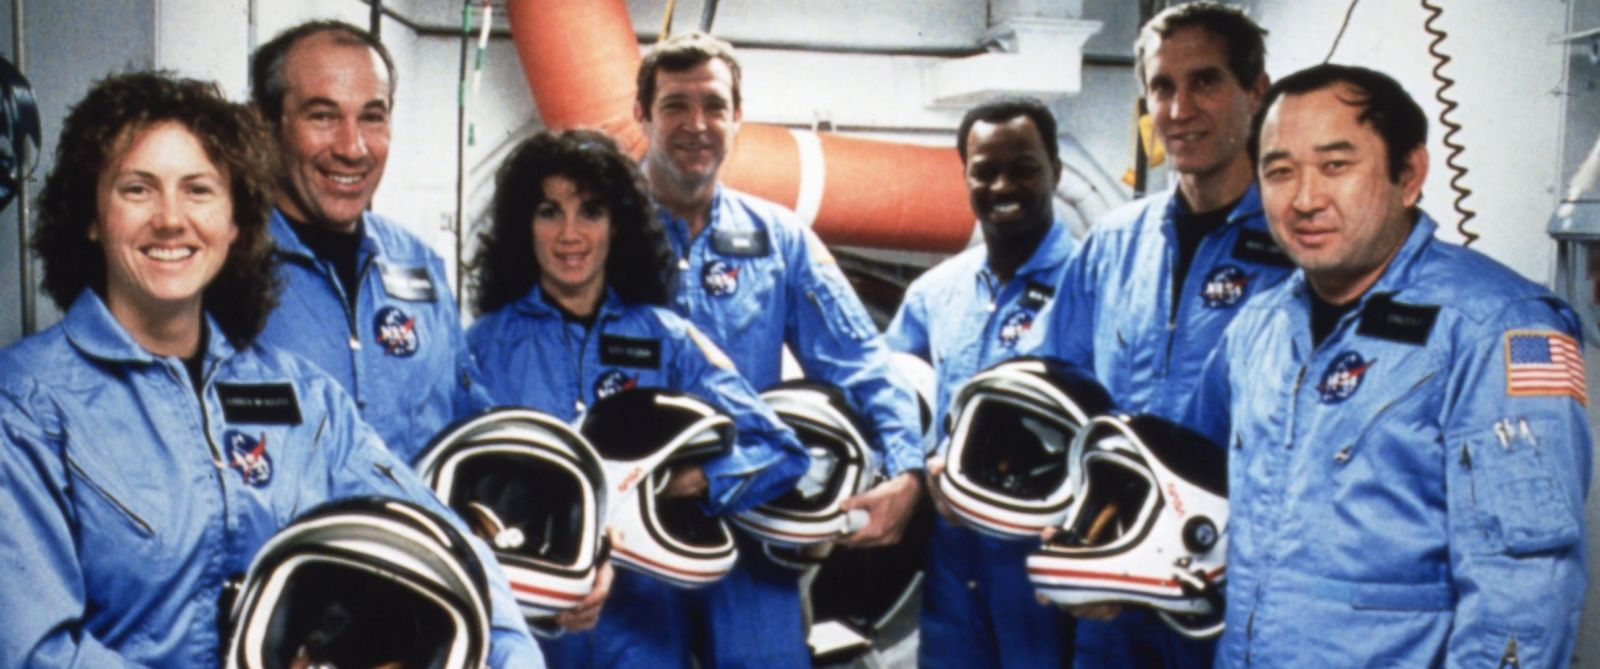 space shuttle challenger mission people - photo #2